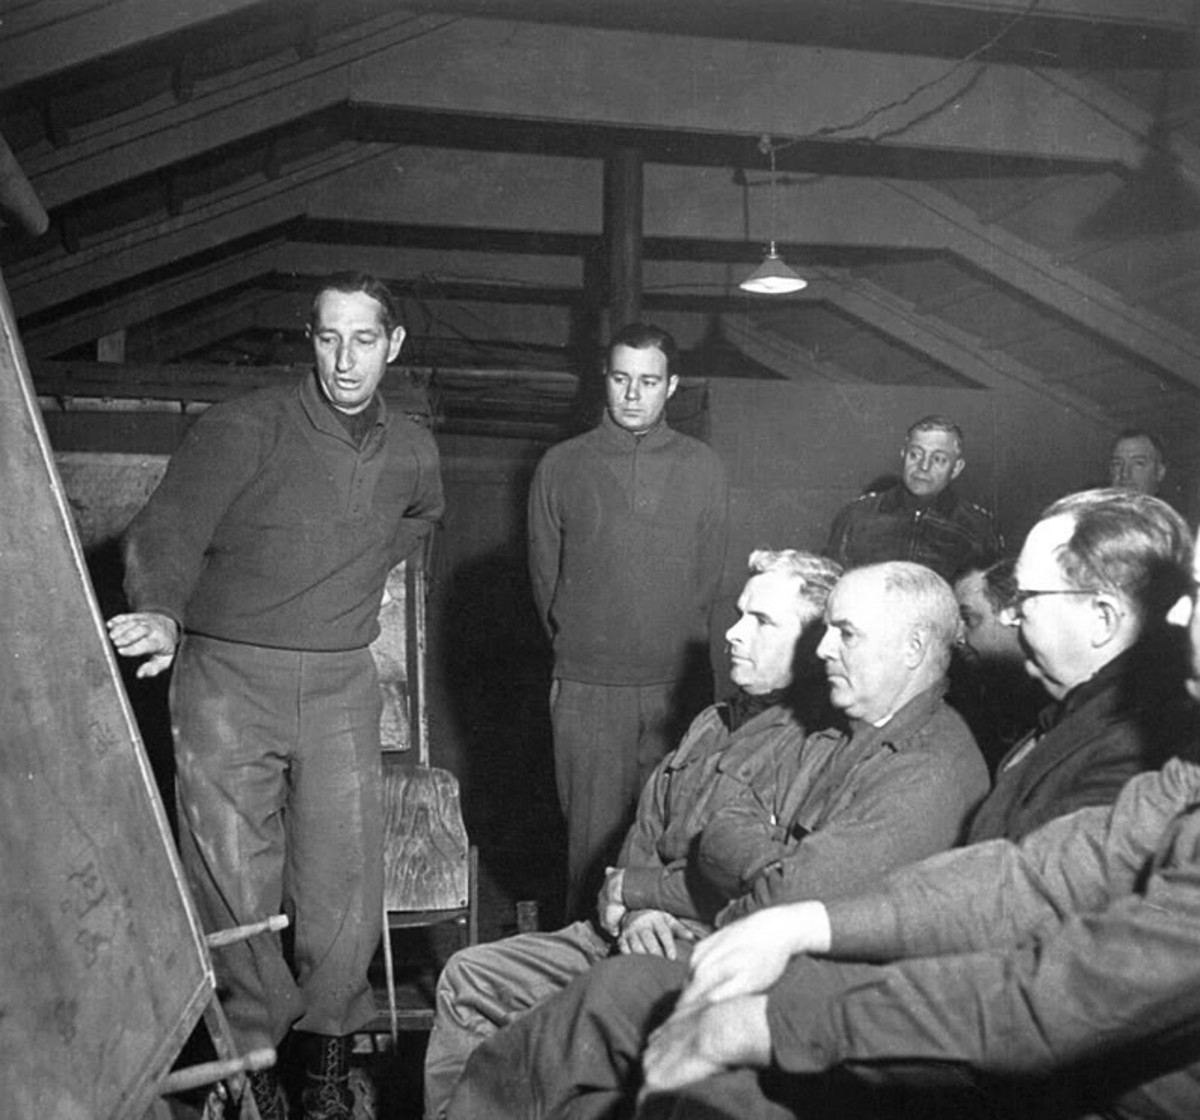 Clark speaks with reporters. General Truscott is in the back (leather jacket). Even Clark's relationship with the press corps became strained.